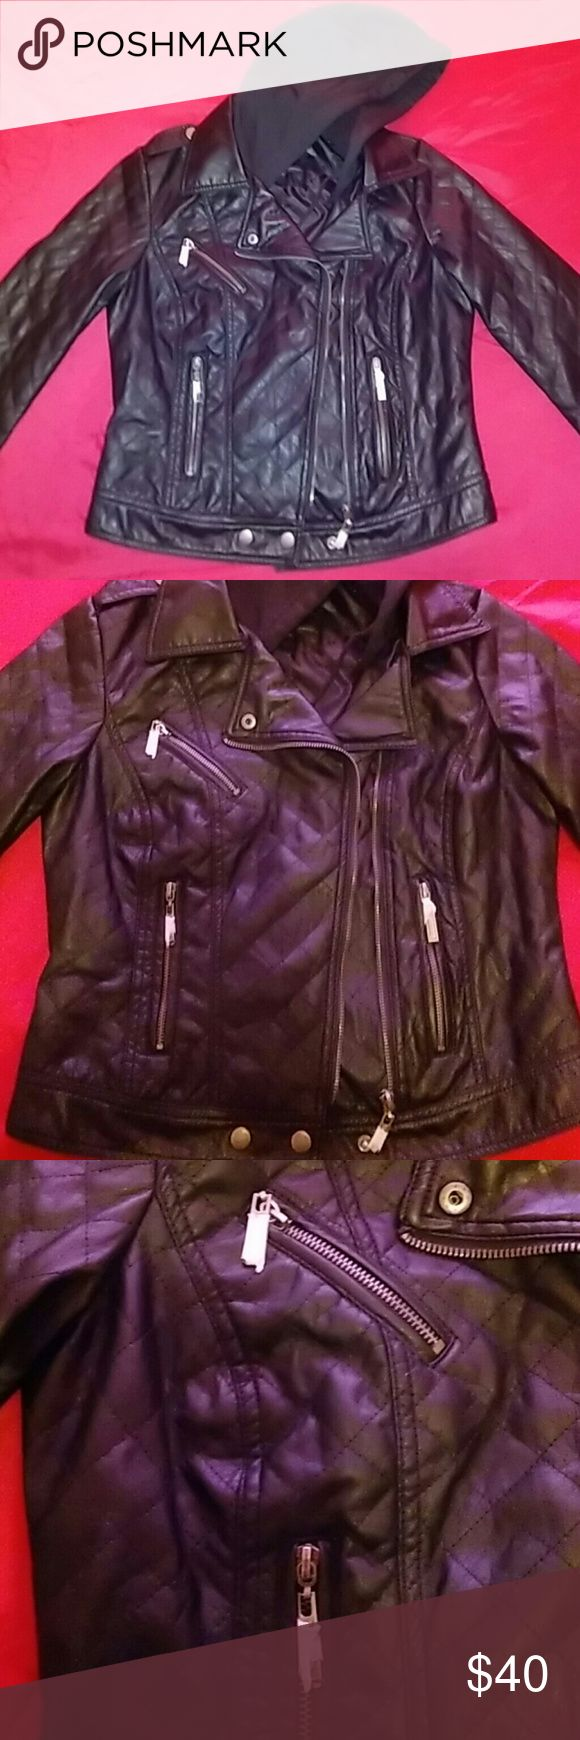 """Black Faux Leather Biker Jacket Never worn (except for this picture) - this jacket is BRAND NEW and even still has the zipper coverings on it! Got a fun motorcycle event coming up? Dating a biker? Just like the biker look? No matter what your reason, this jacket yells, """"Rebel!"""". Not to mention it's very comfortable and soft; it looks like real leather. It's fairly light weight too, so you could pull it off in milder temperatures! Also has a built in, removable hood for when it gets colder…"""